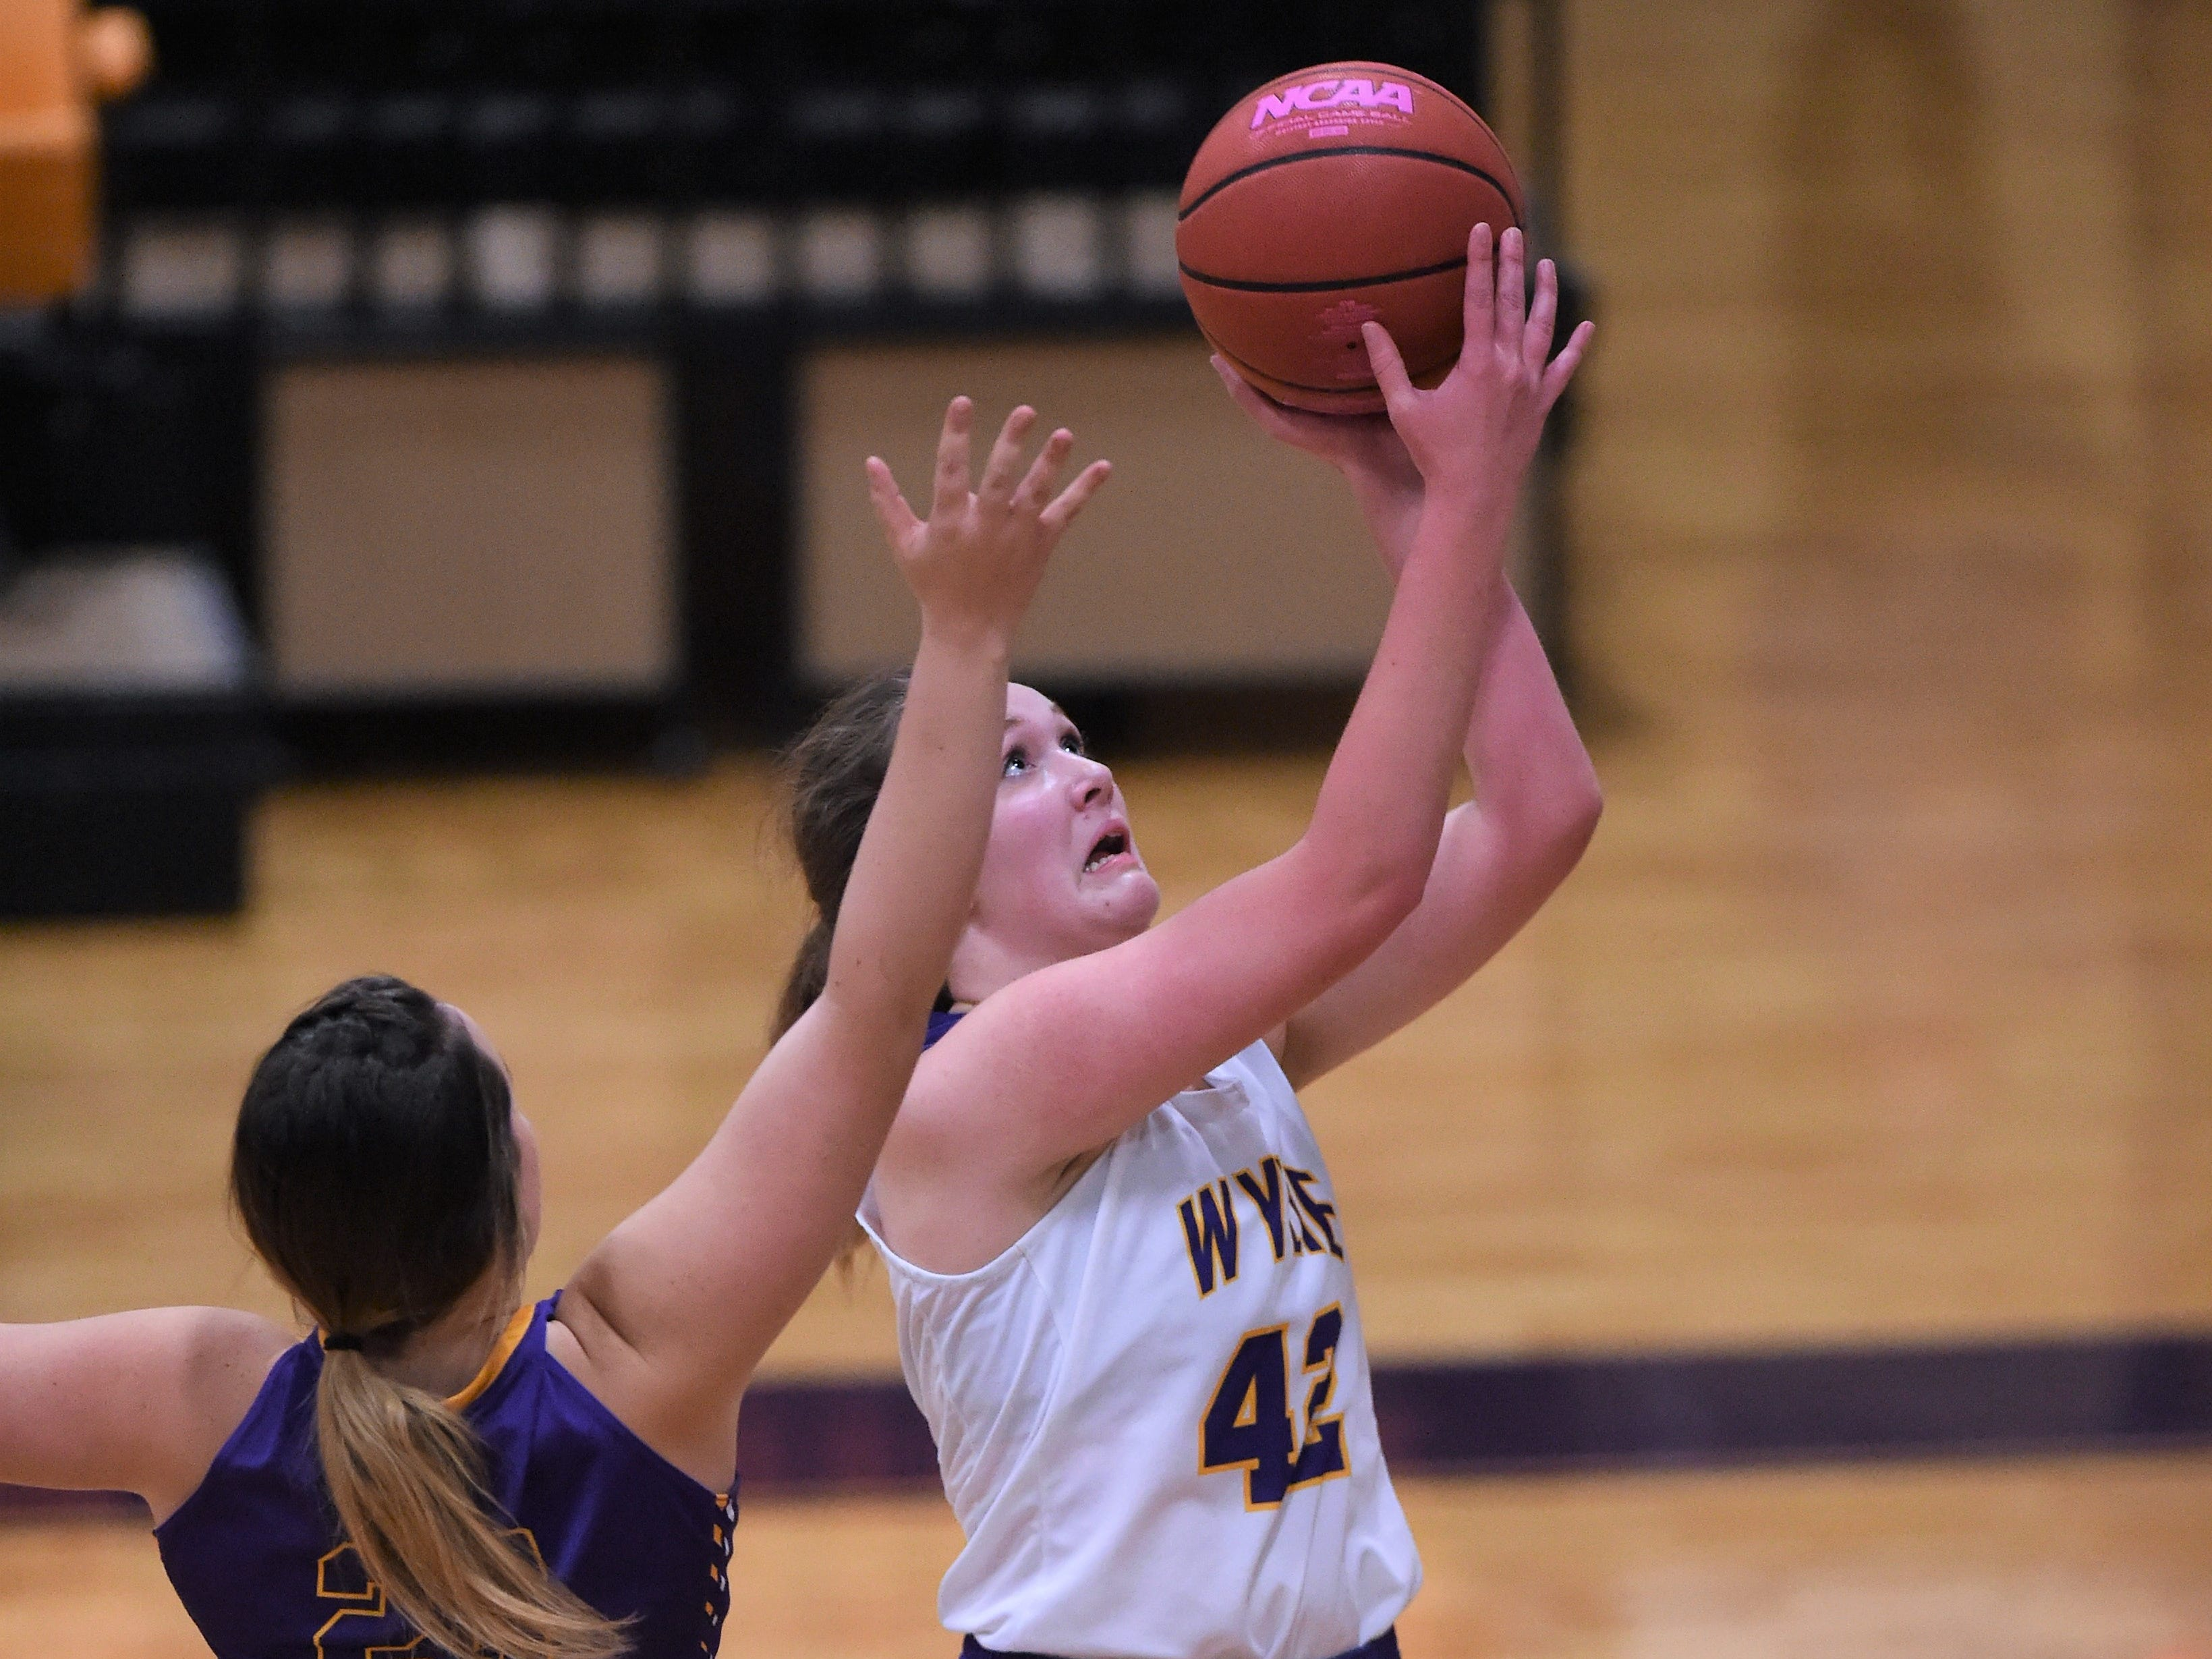 Wylie's Bailey Roberts (42) takes a shot against Merkel in the Coaches vs. Cancer Pink Out game on Tuesday, Dec. 4, 2018. The Lady Bulldogs won 75-39.